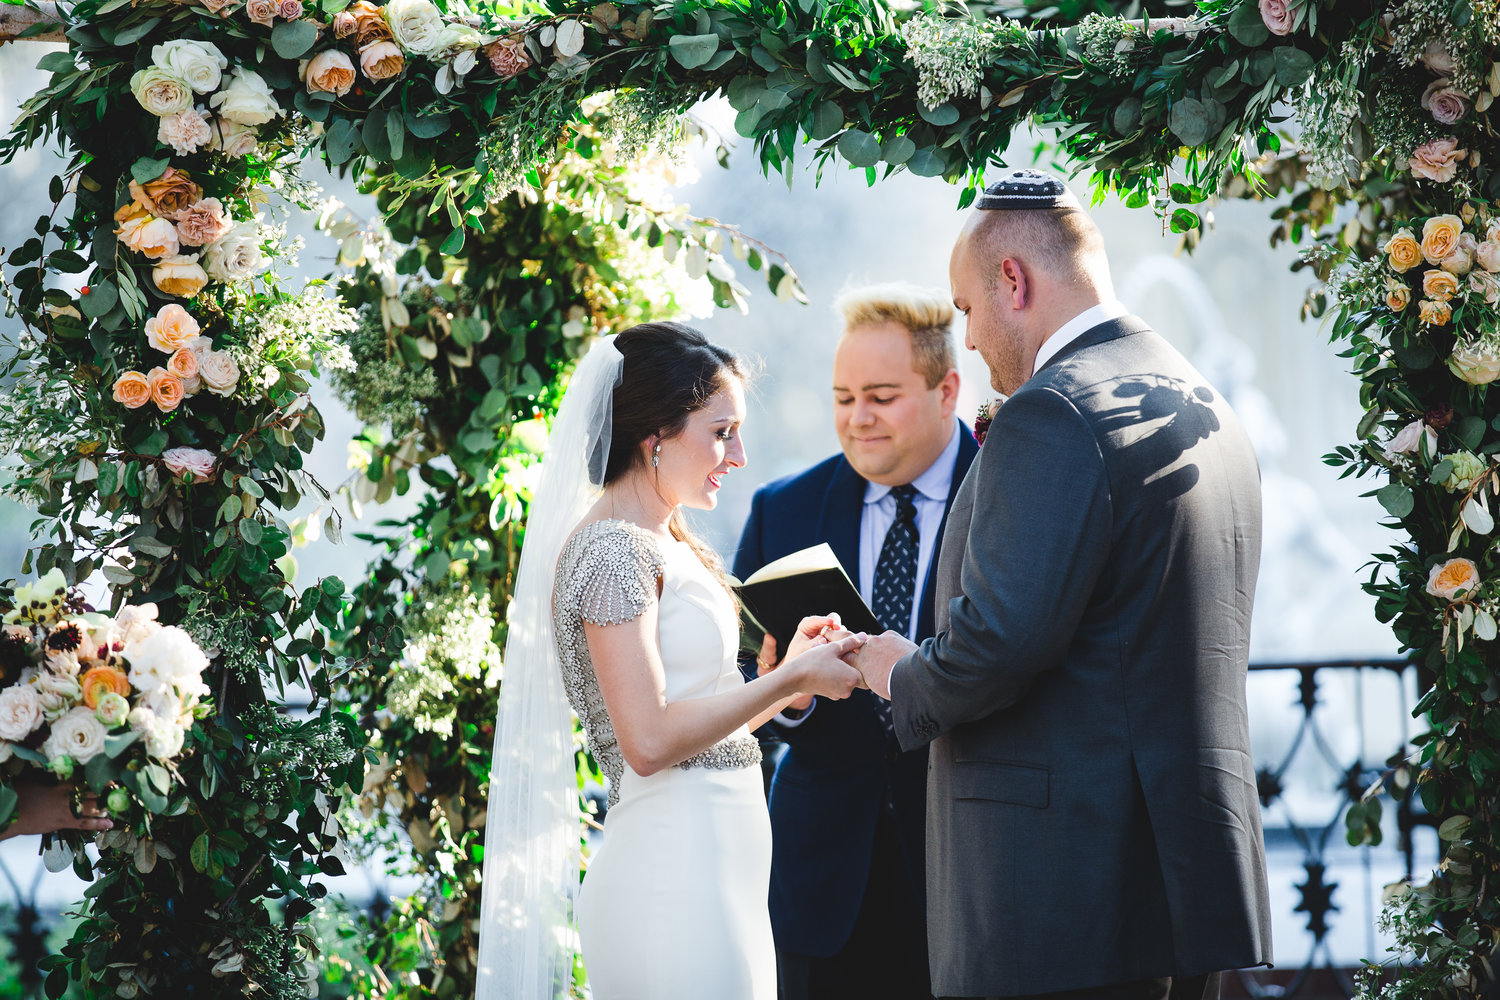 izzy-hudgins-photography-savannah-wedding-ivory-and-beau-bridal-boutique-savannah-wedding-planner-colonial-house-of-flowers-forsyth-park-wedding-old-fort-jackson-wedding-squidwed-films-savannah-boutique-savannah-weddings-32.jpg